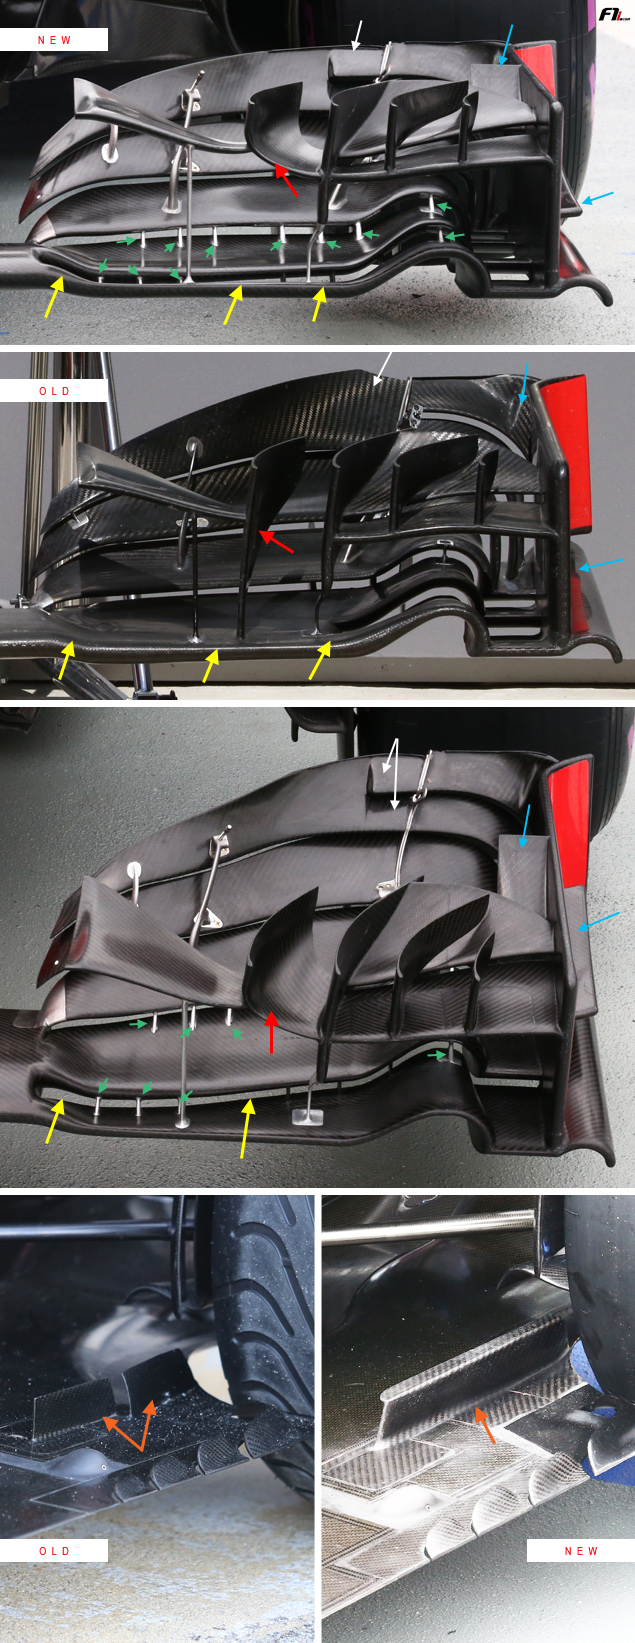 f1-technical-analysis-singapore-haas-front-wing_en